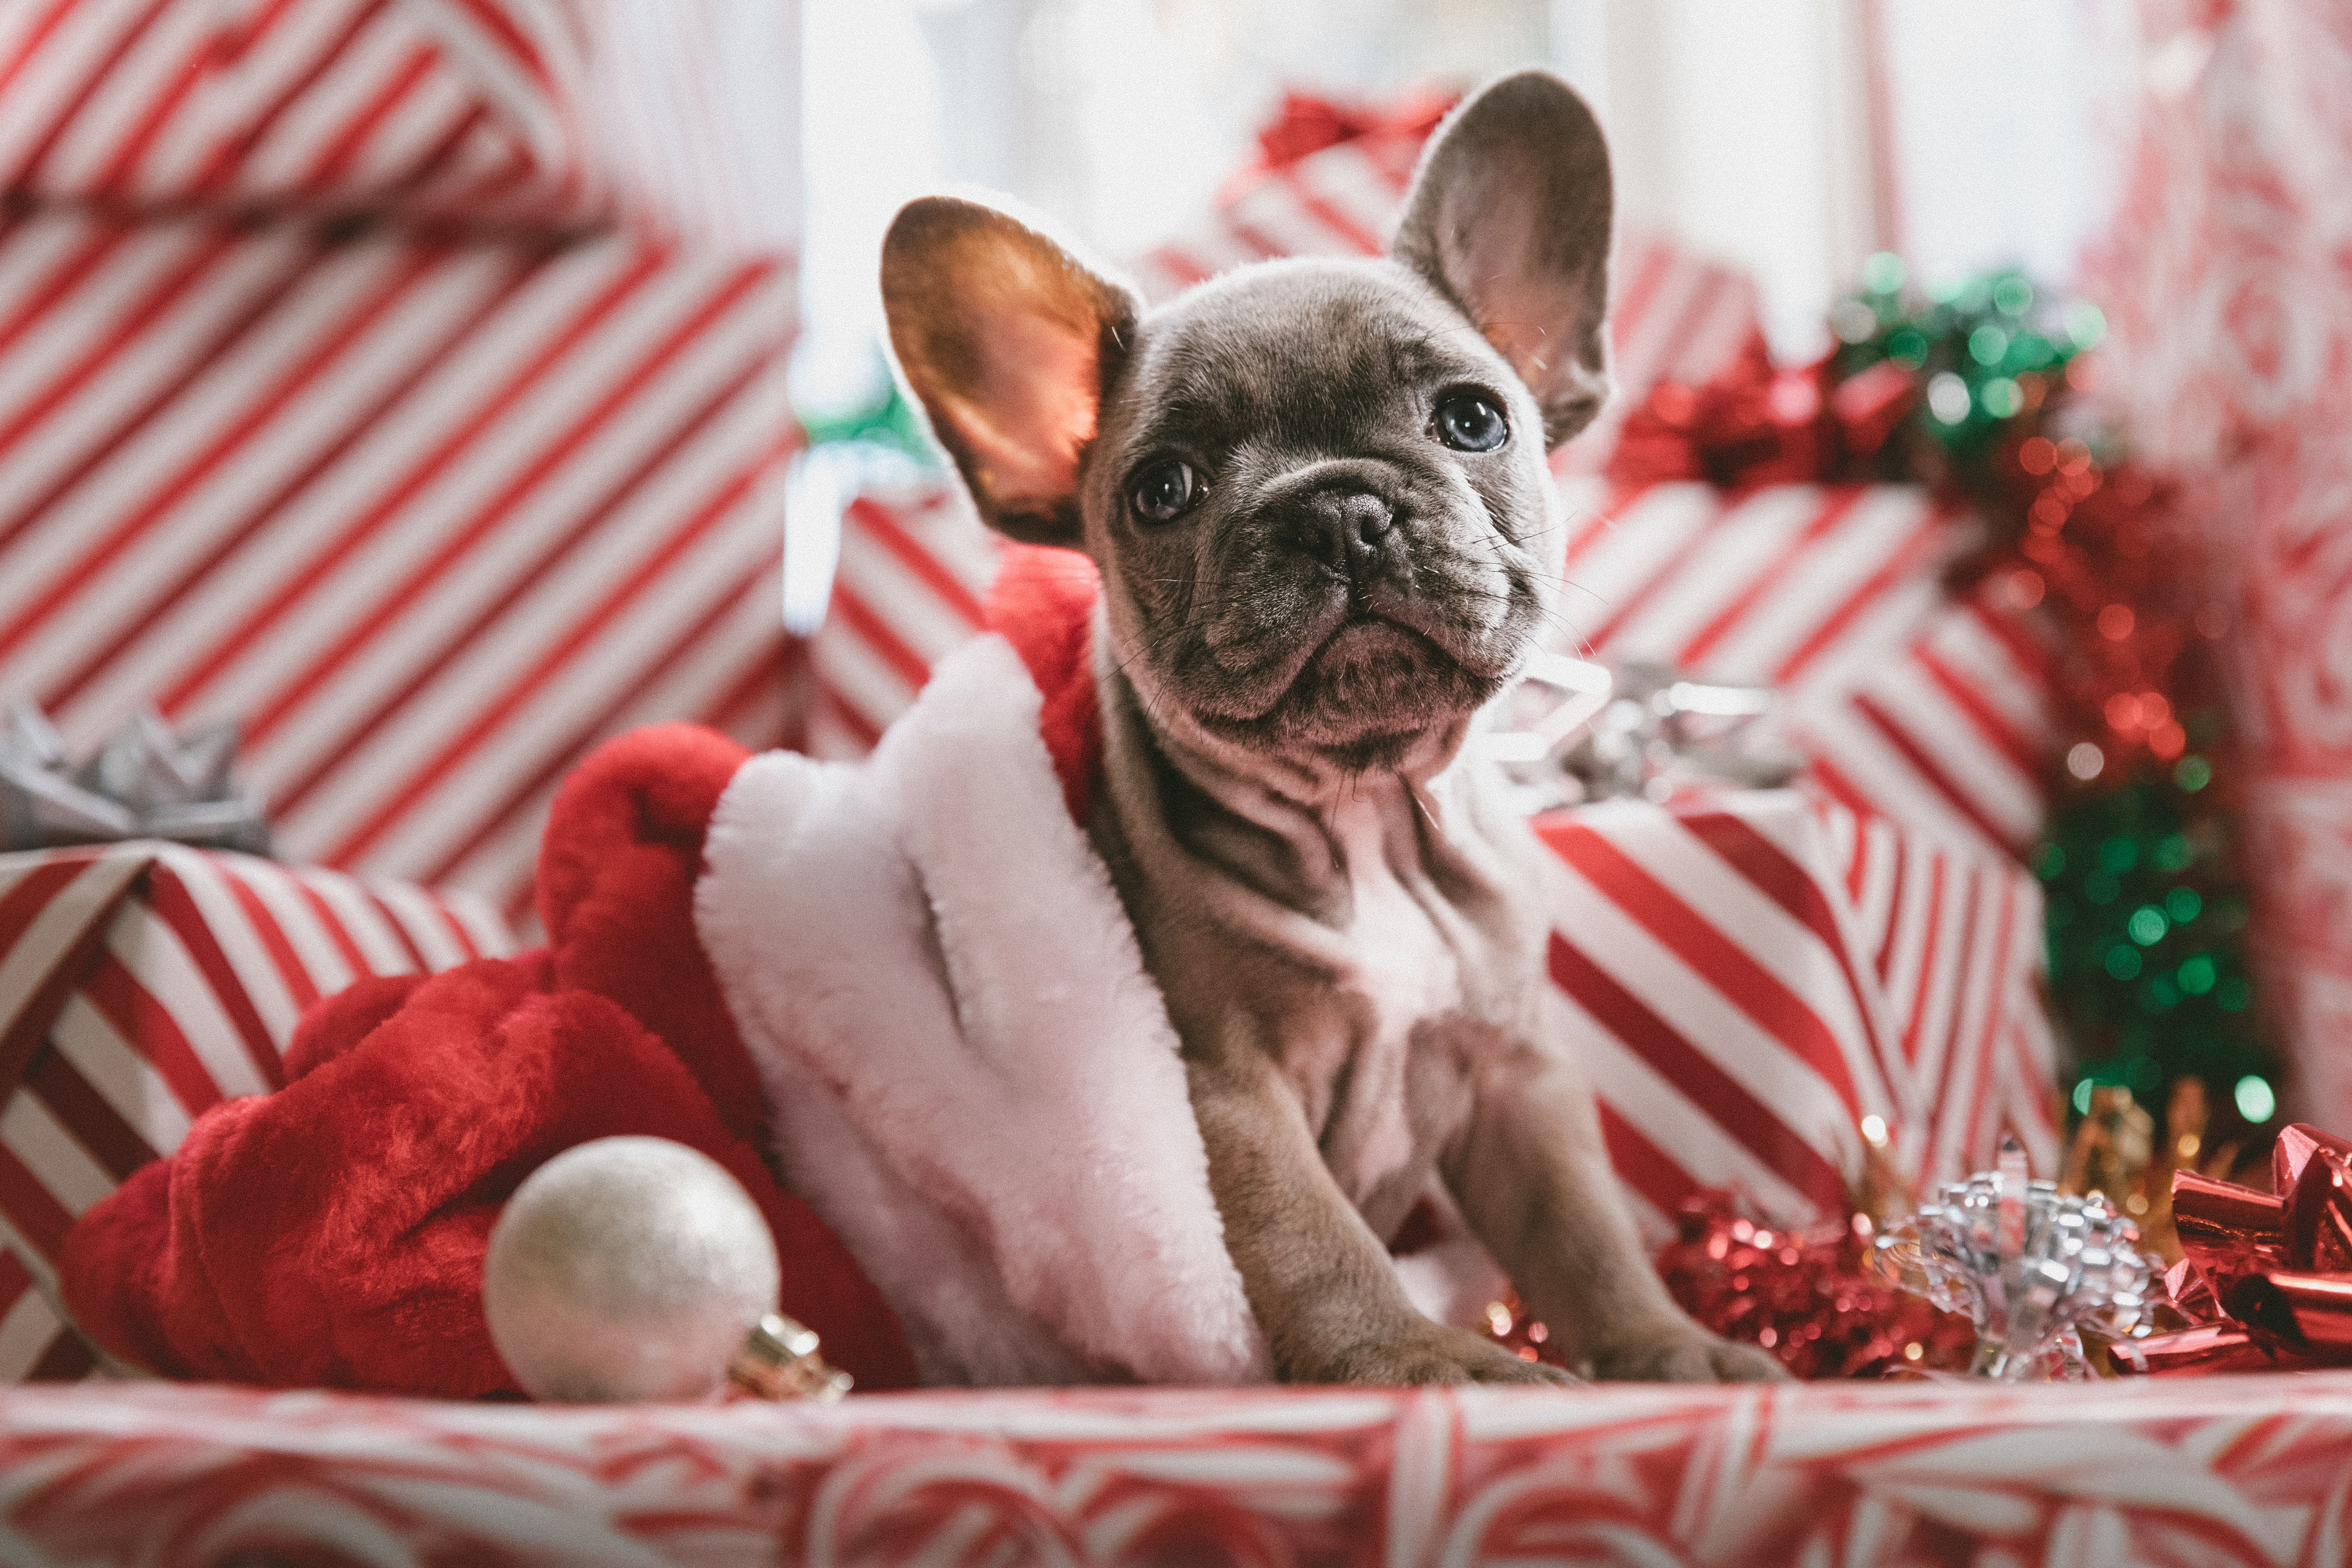 pin by stylecaster on testing photos for httydd in 2020 christmas pet photos dog gifts brindle french bulldog pin by stylecaster on testing photos for httydd in 2020 christmas pet photos dog gifts brindle french bulldog